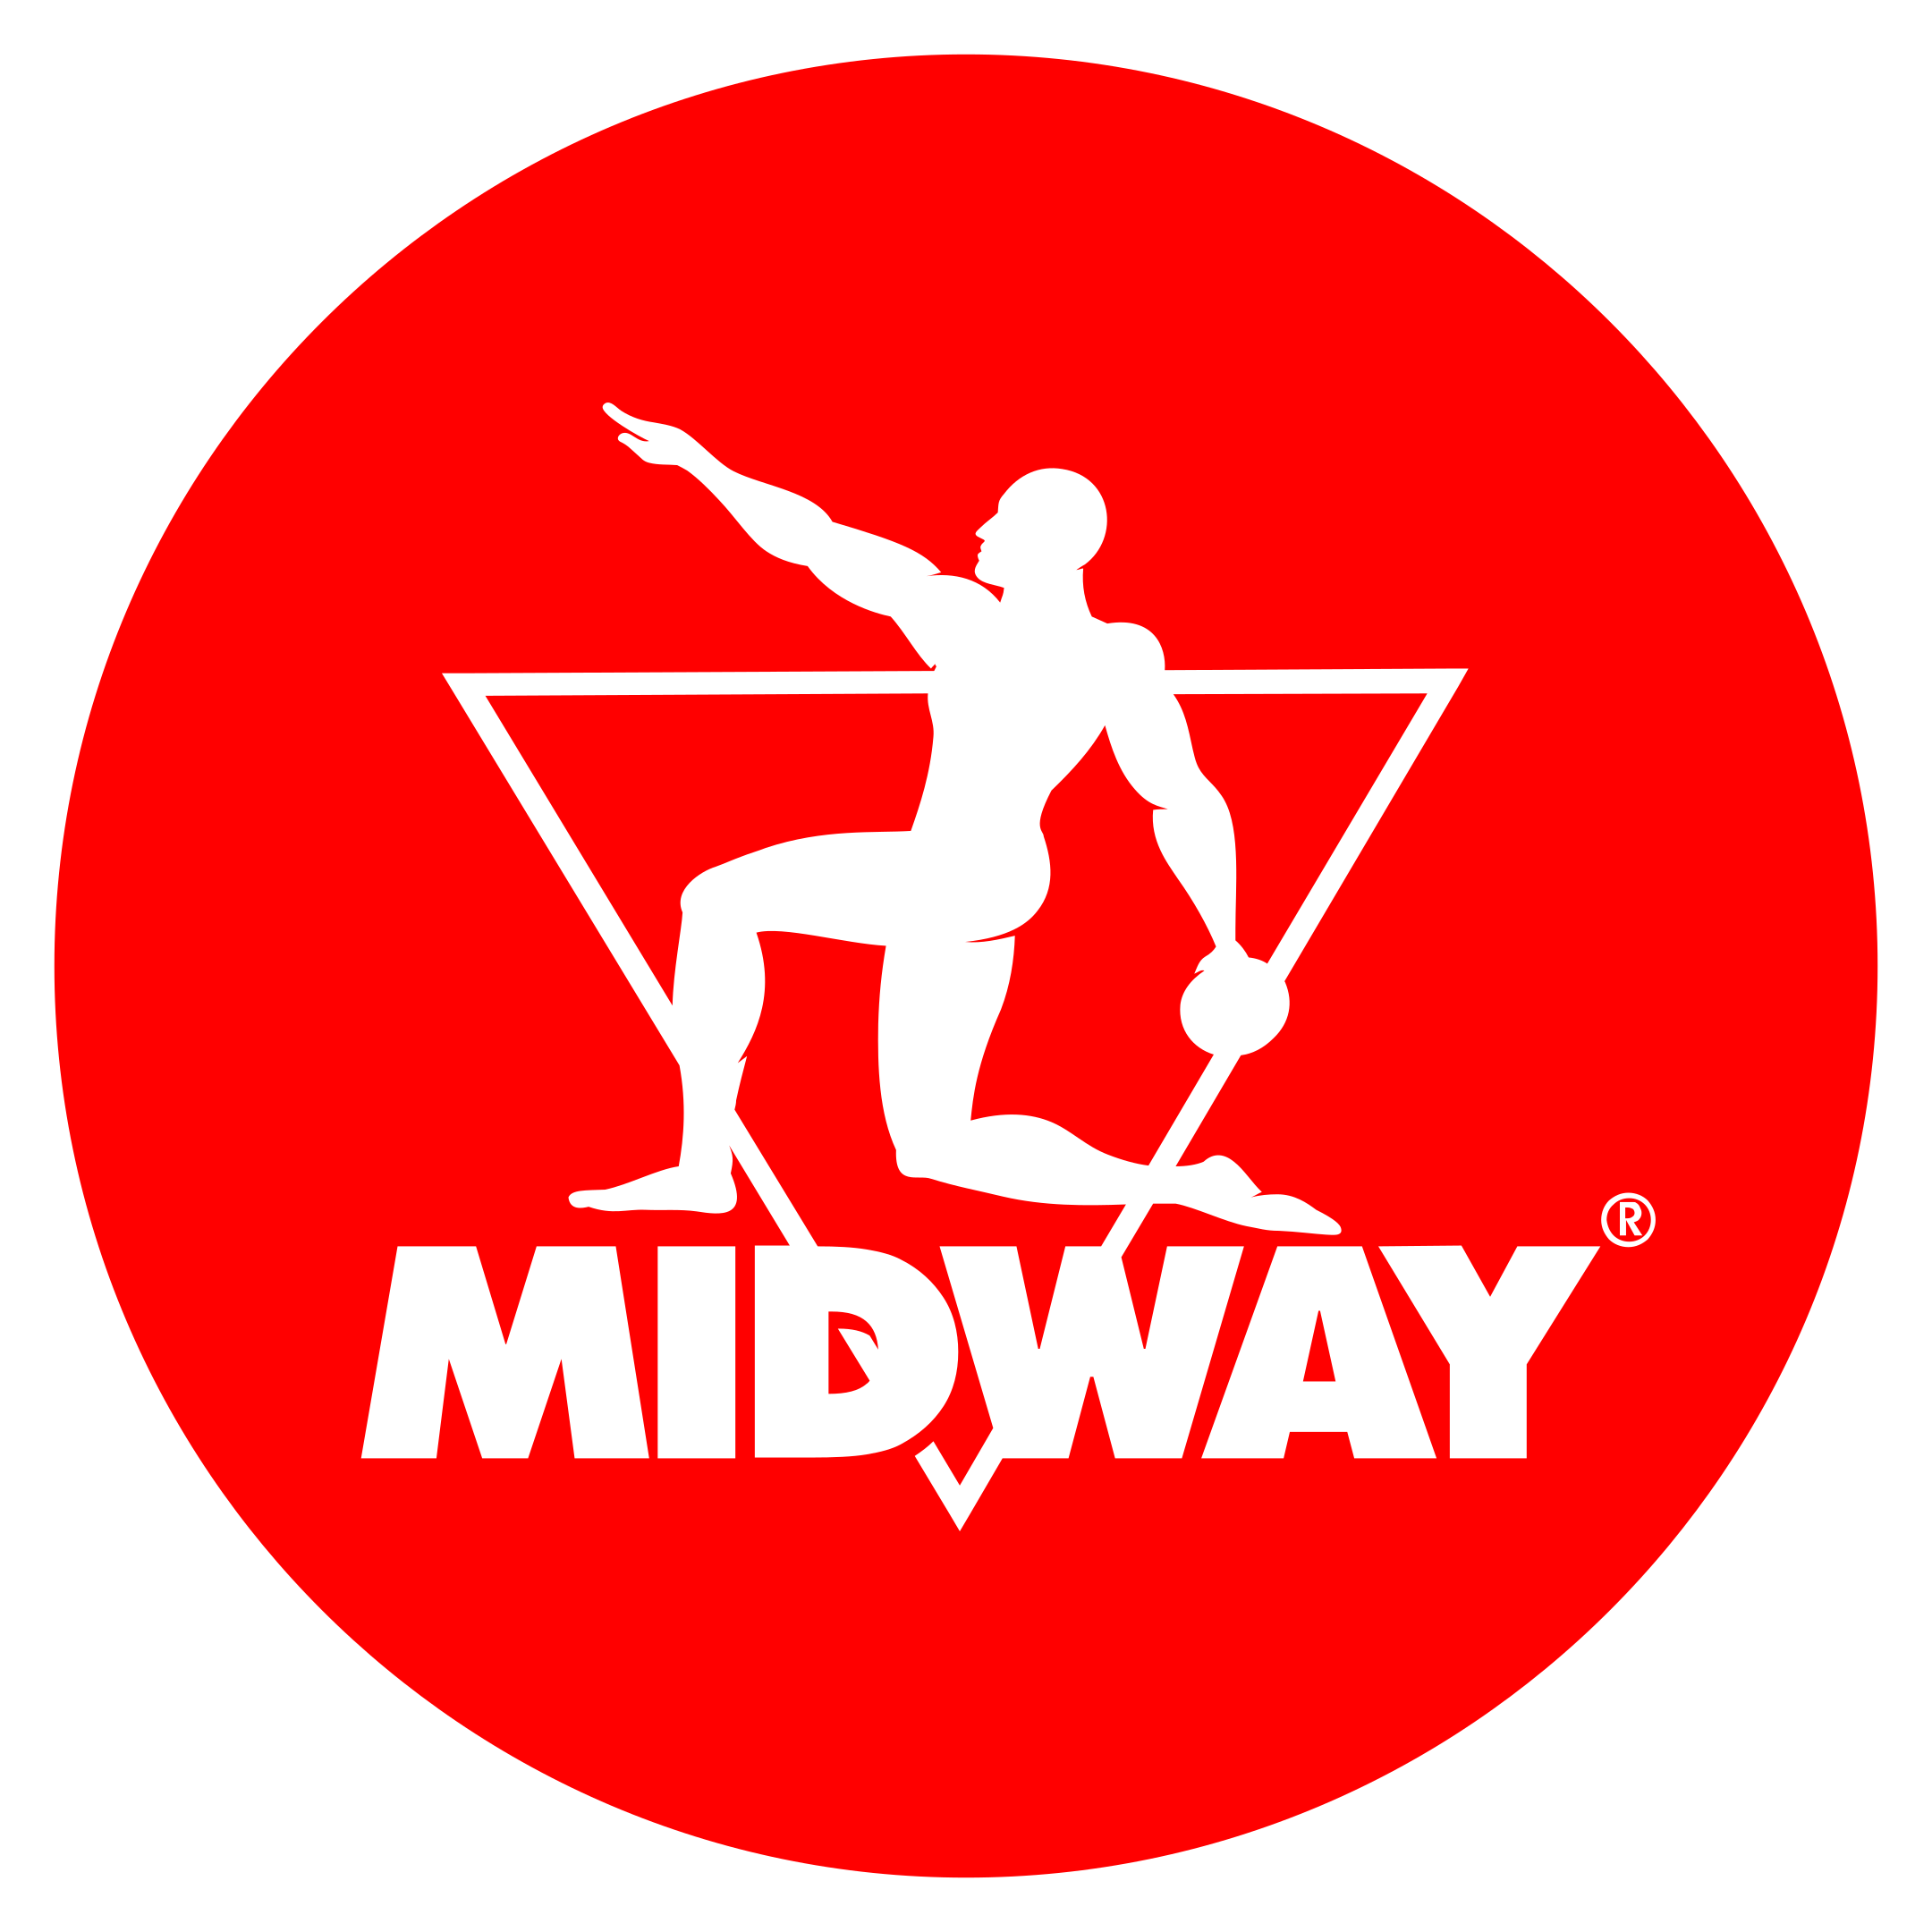 midway labs logo 1 - Midway Labs Logo